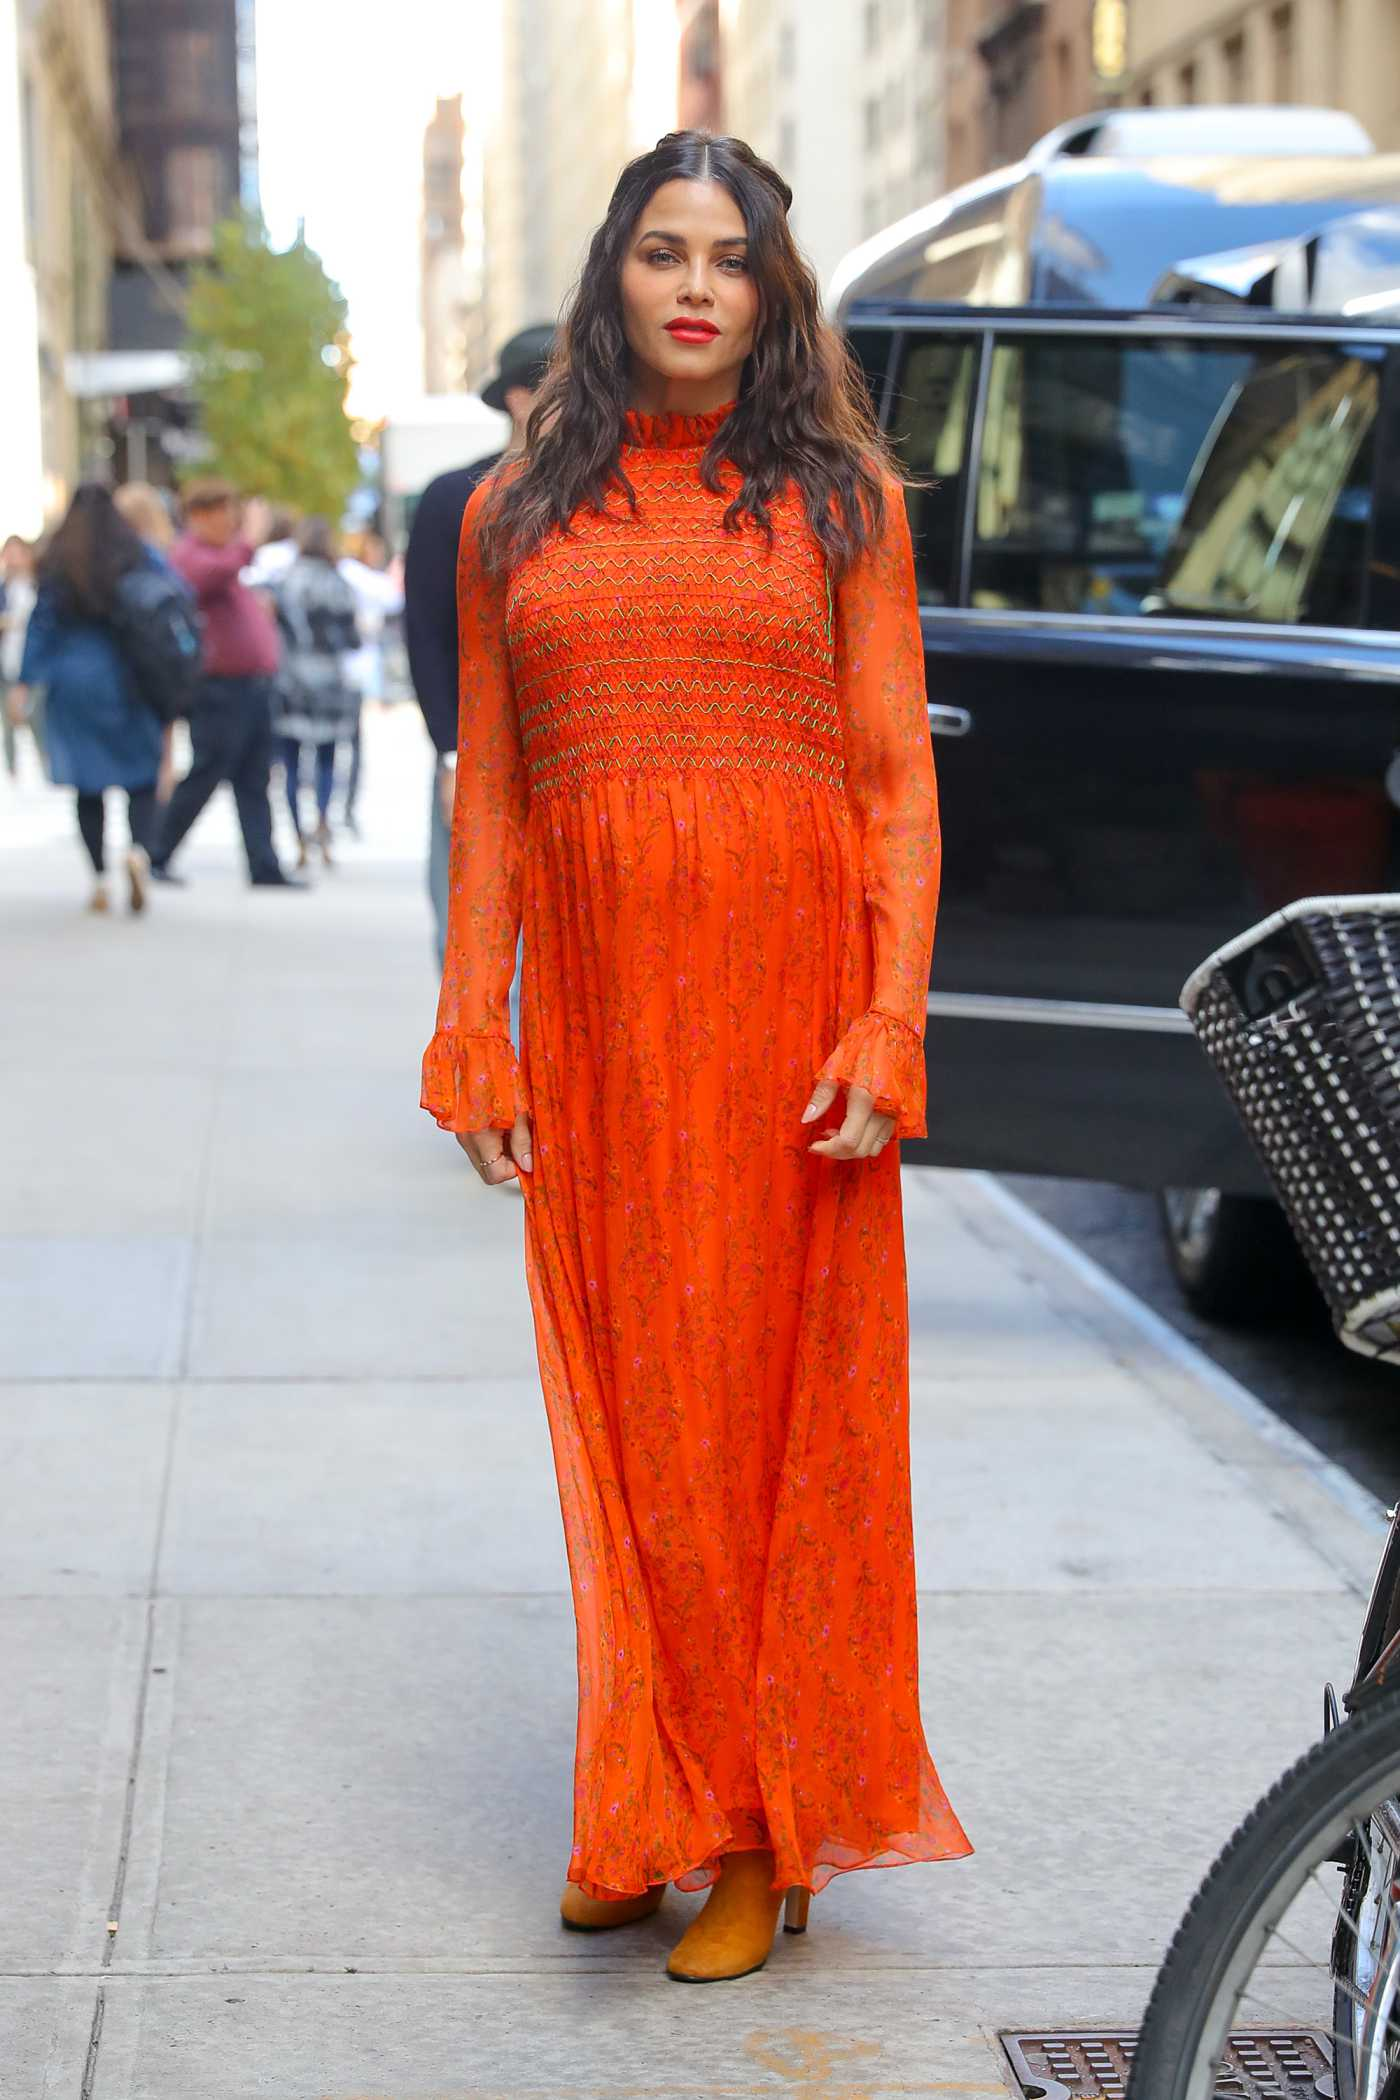 Jenna Dewan in an Orange Dress Was Seen Out in New York City 10/23/2019